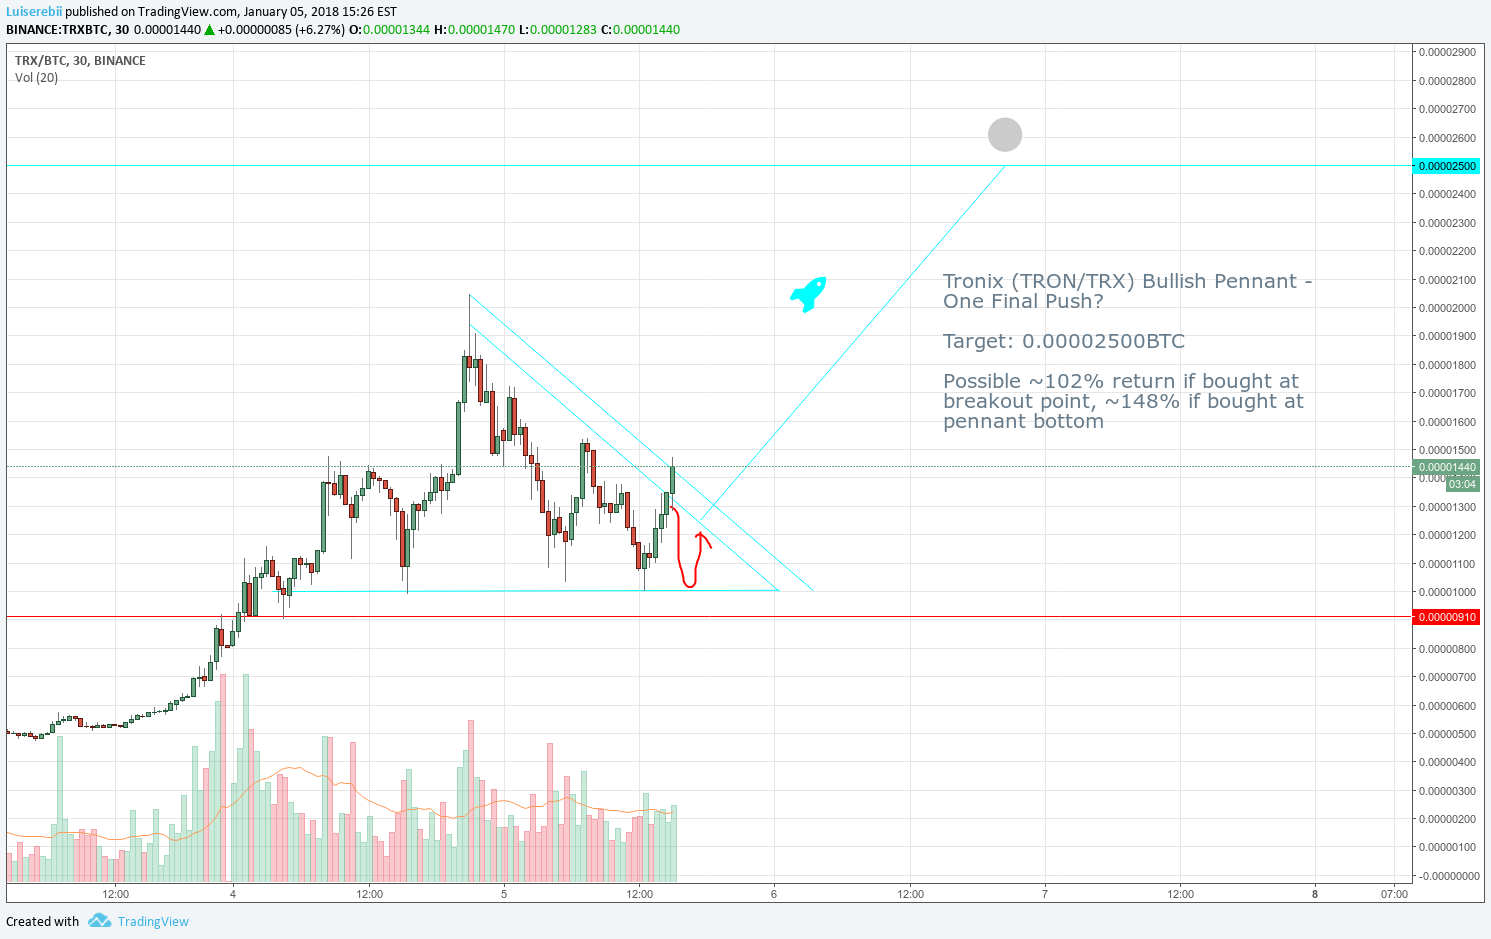 Tronix (TRON/TRX) Bullish Pennant - One Final Push? (102% Gains) for